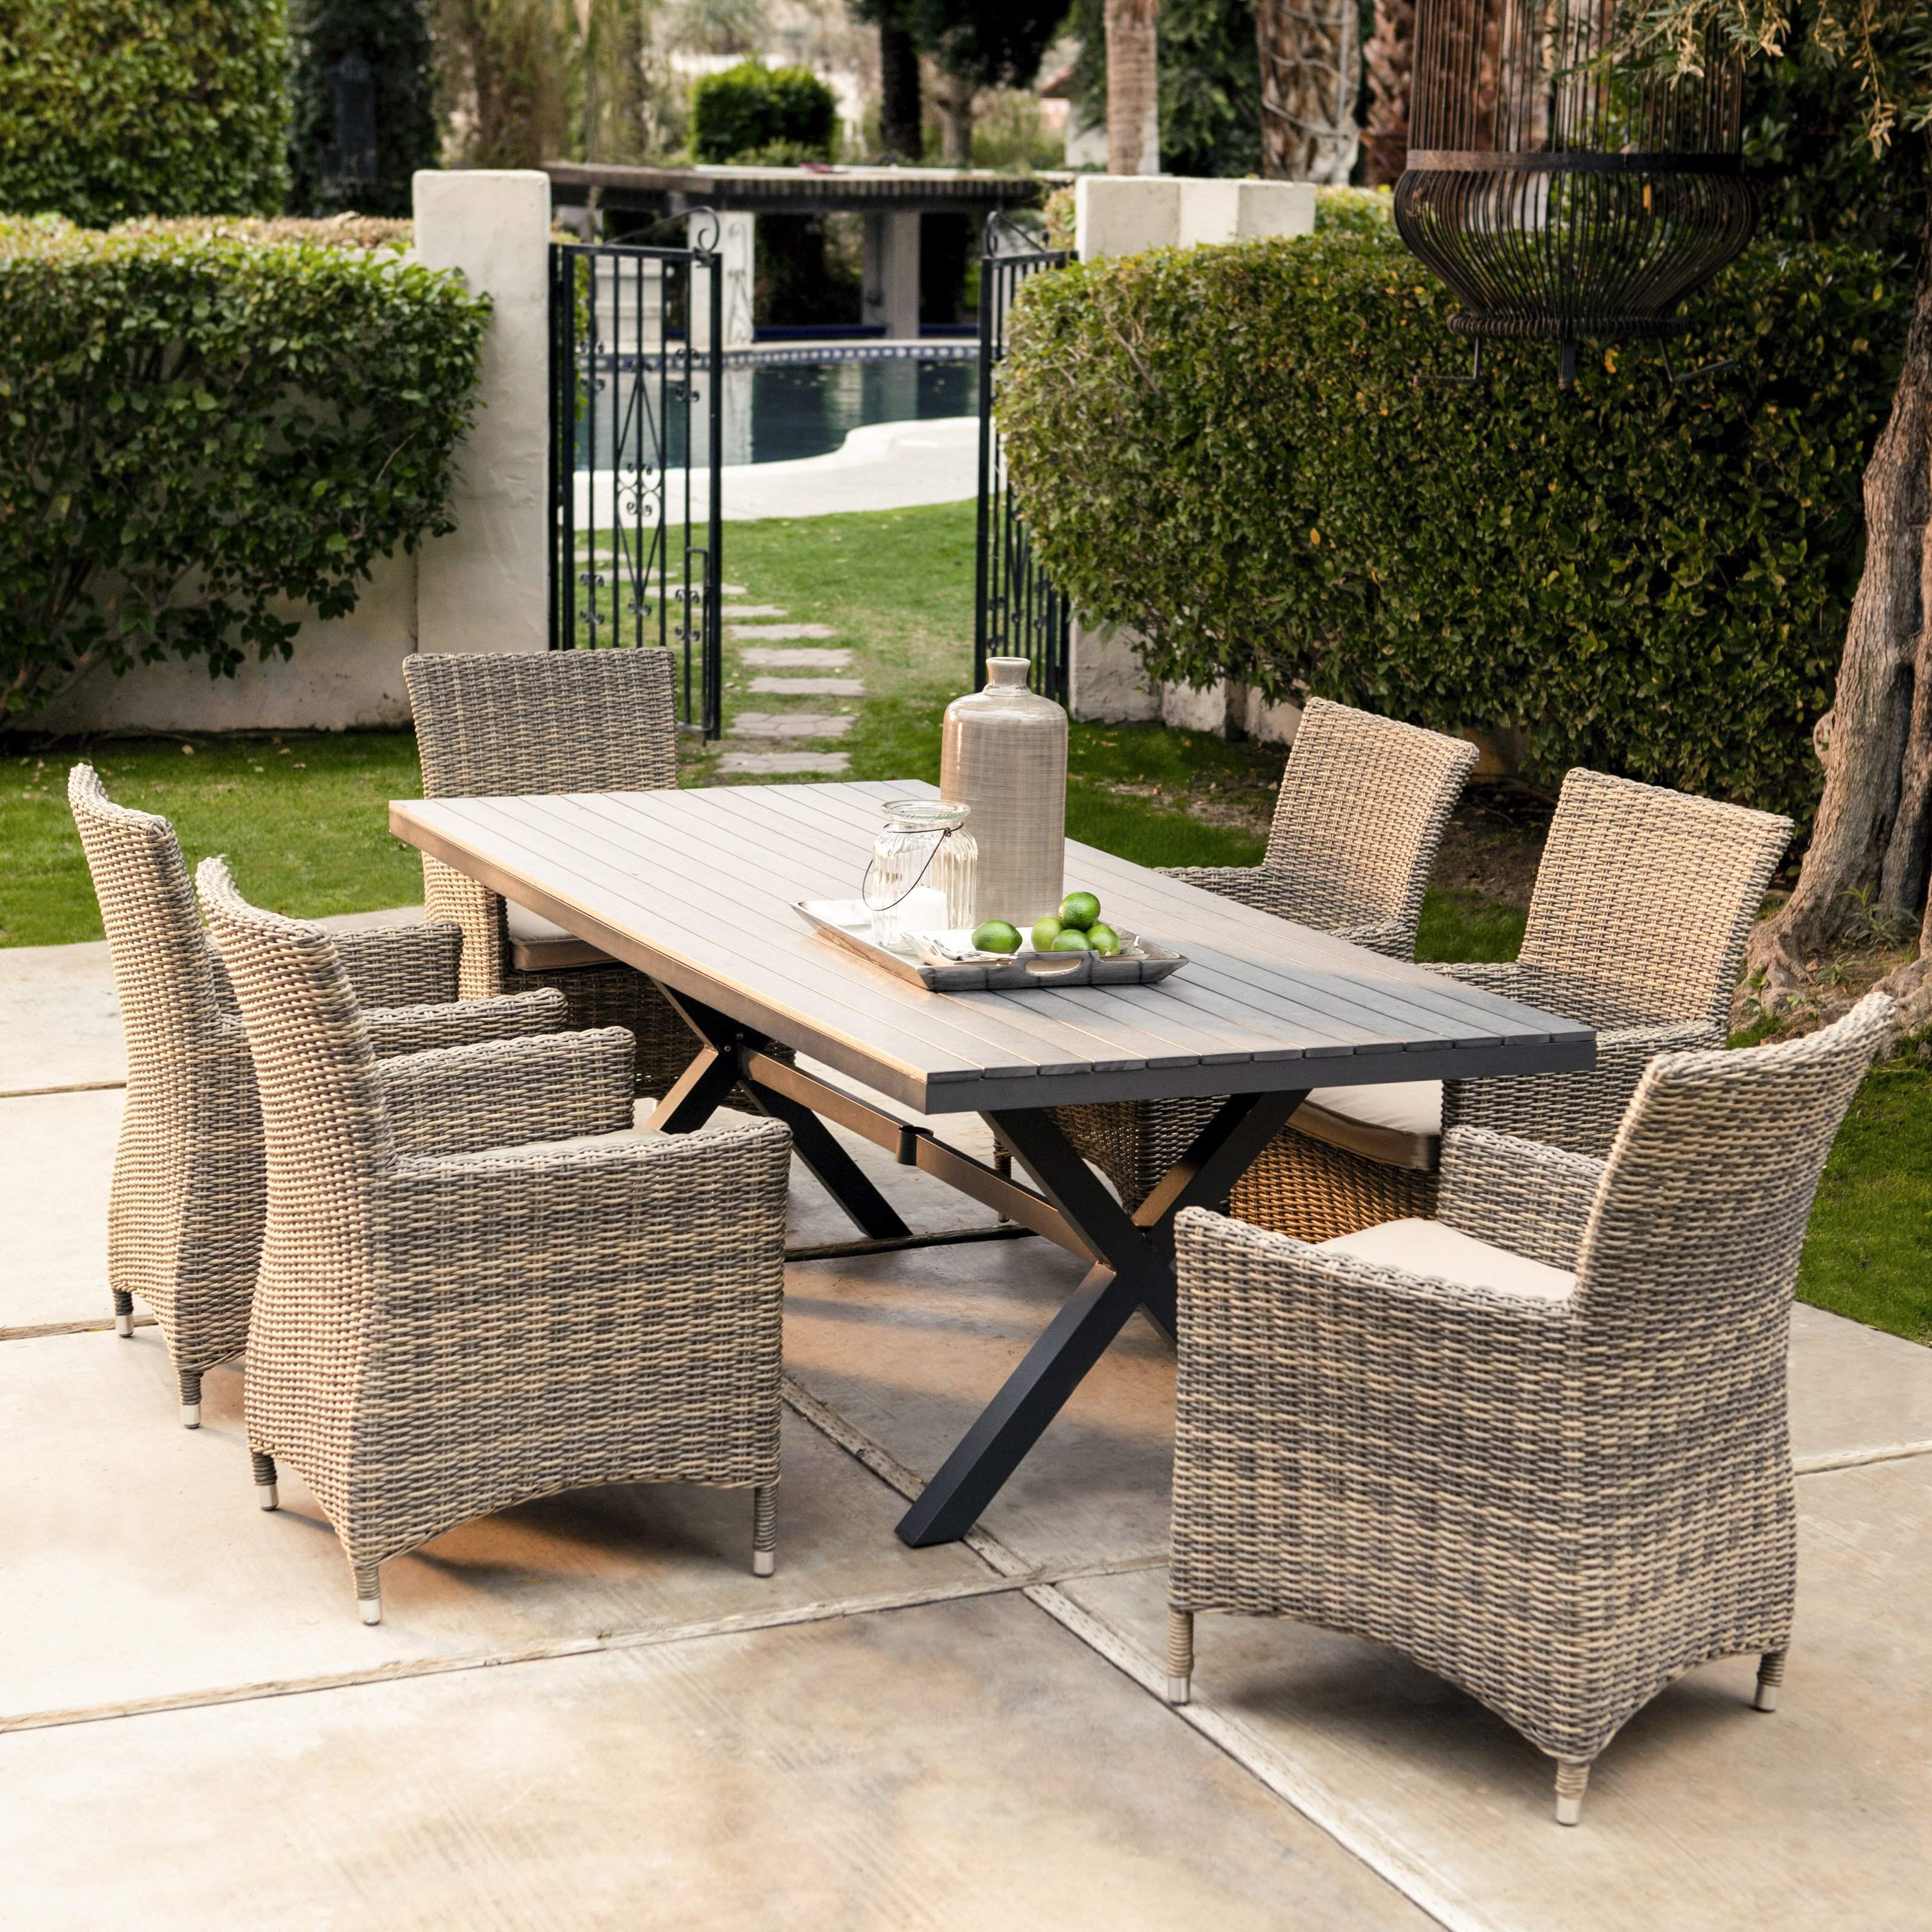 Belham Living Bella All Weather Wicker 7 Piece Patio Dining Set   Seats 6    Walmart.com